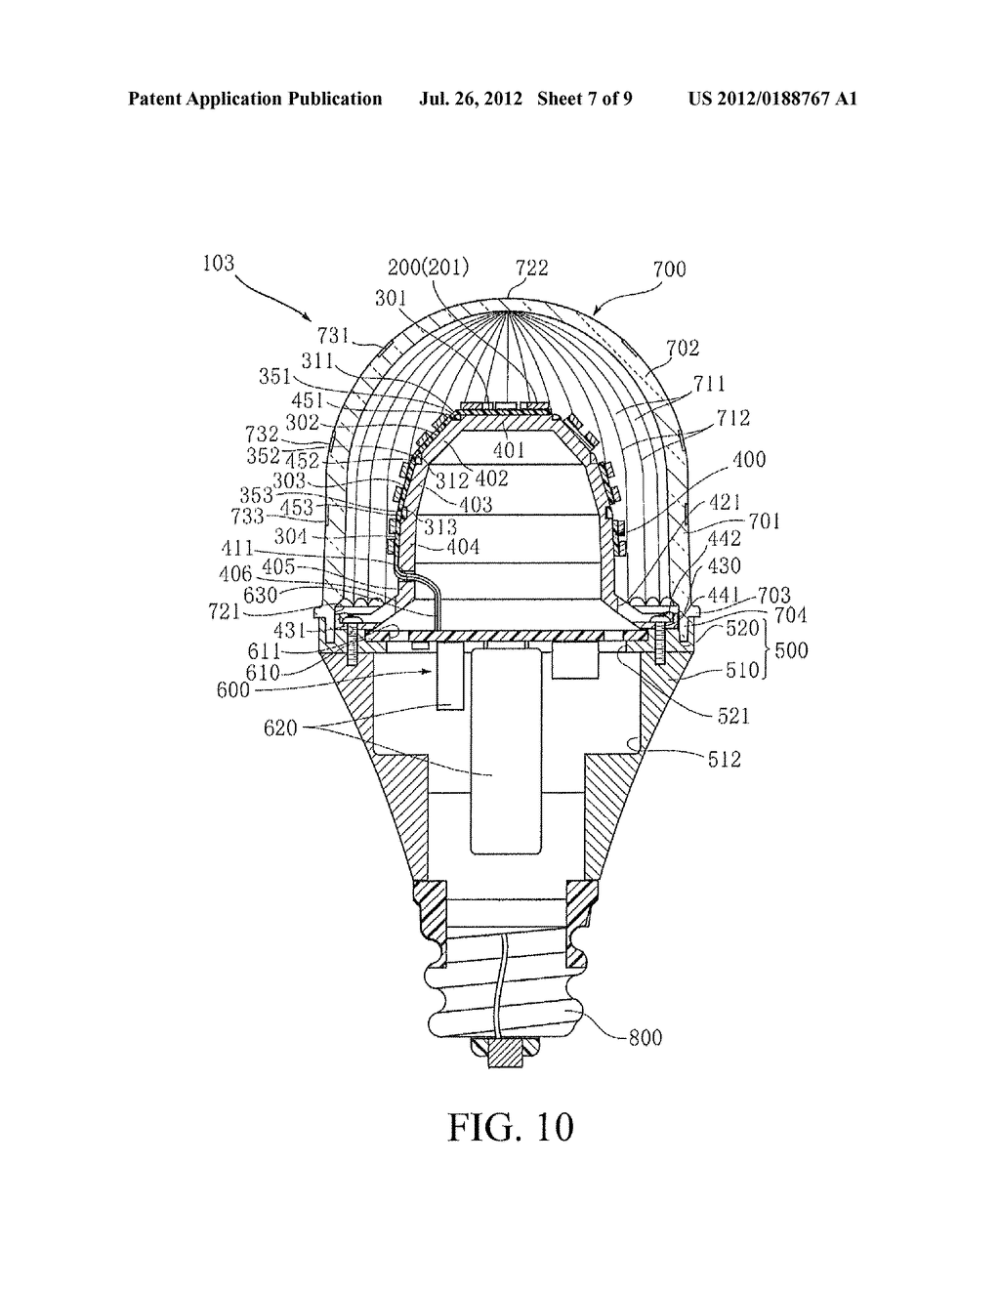 medium resolution of led light bulb diagram schematic and image 08 light bulb parts labeled light bulb schematic